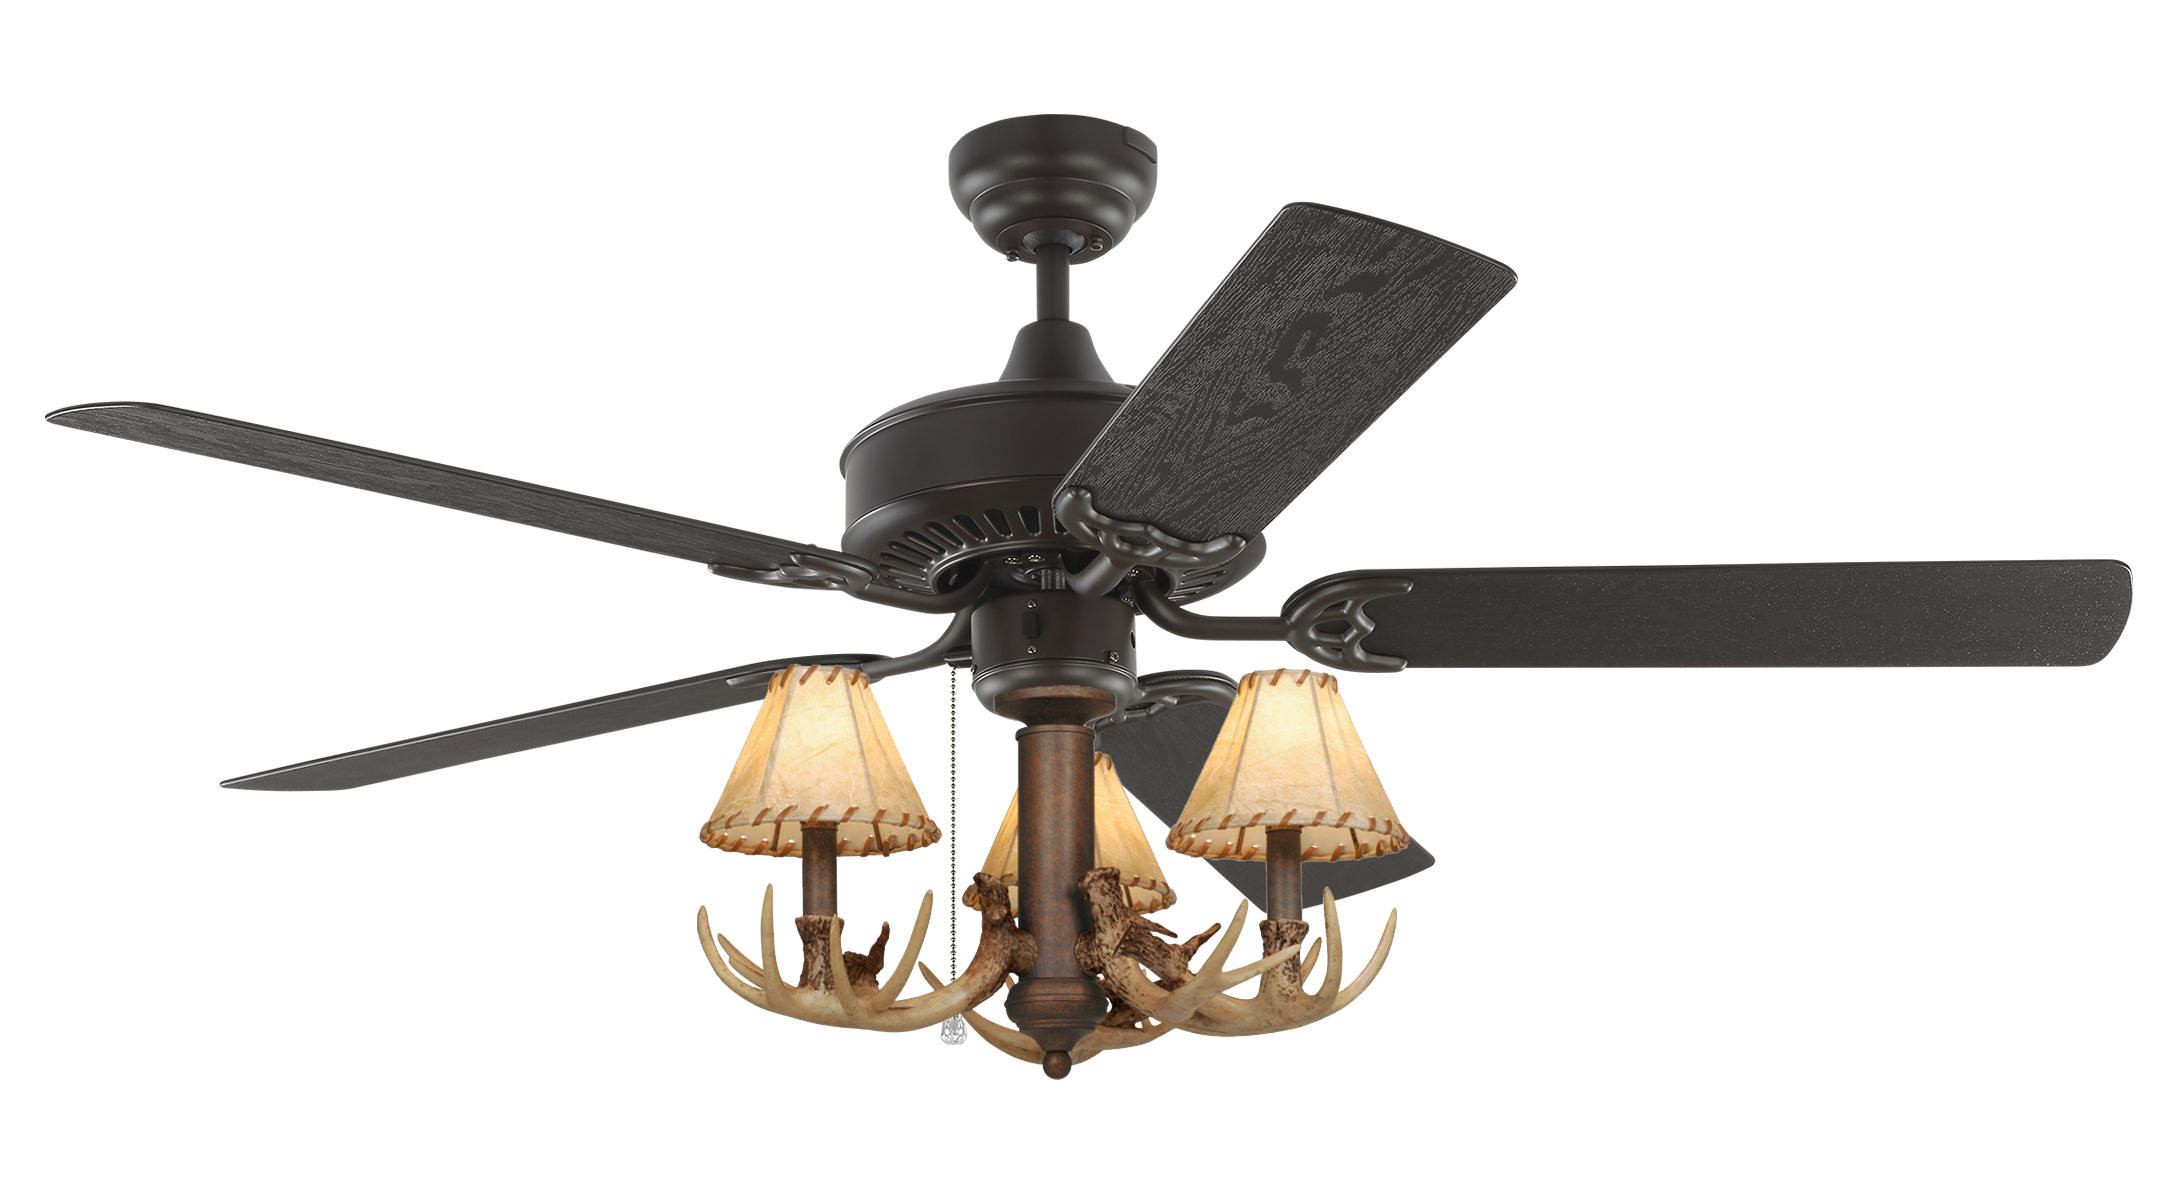 Rustic Flush Mount Ceiling Fan With Light 2022